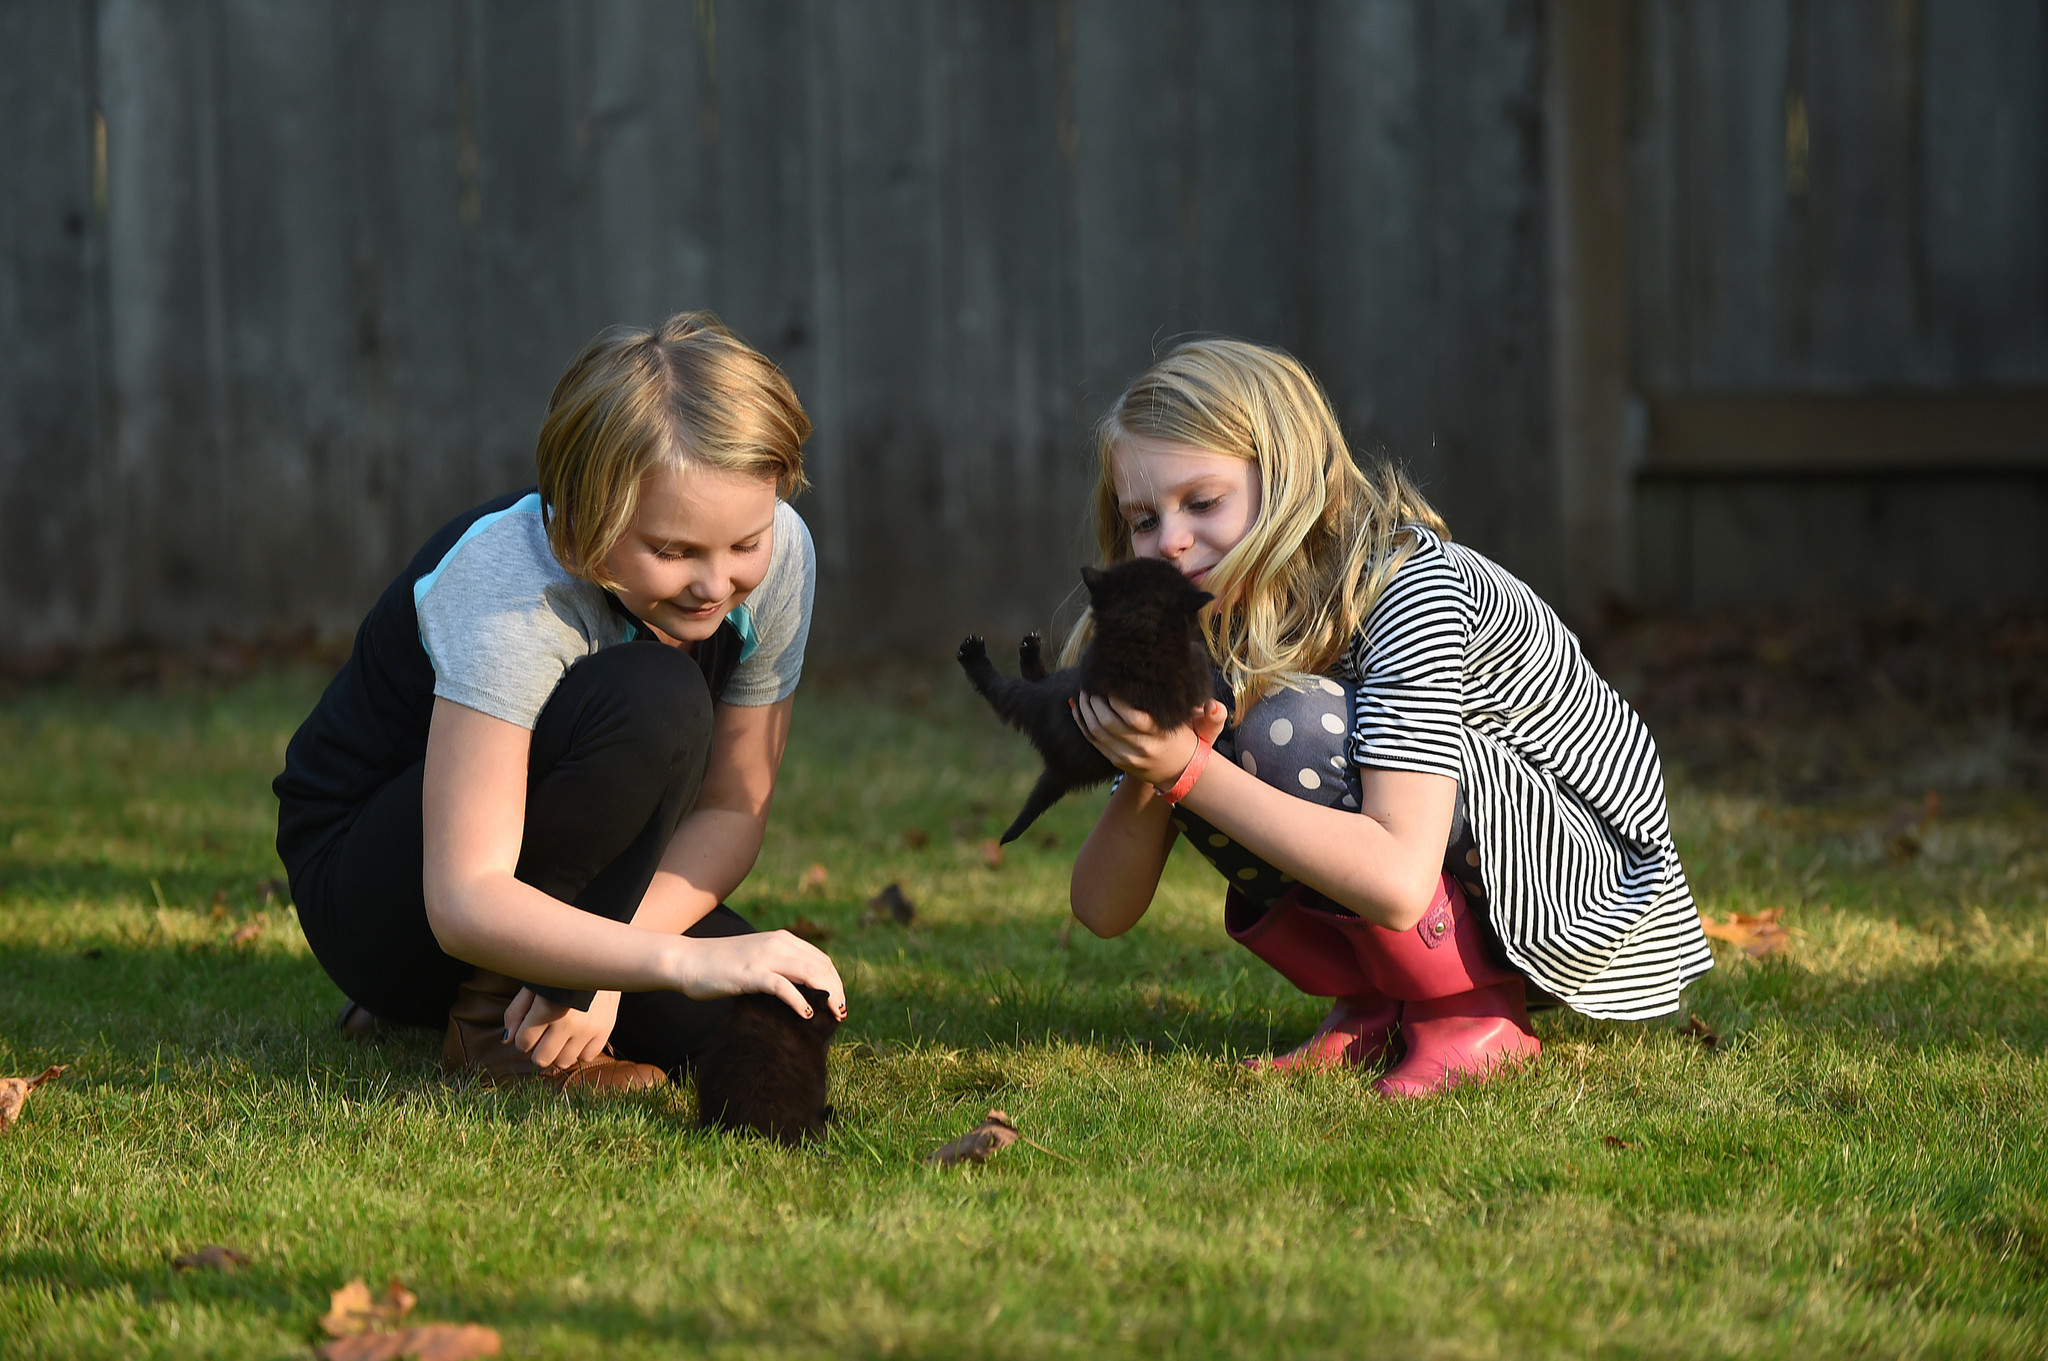 Madeline, 9, left, and Samantha, 8, play with their new kittens, Pirate and Orion, in their backyard in Washington state after school in October 2017.